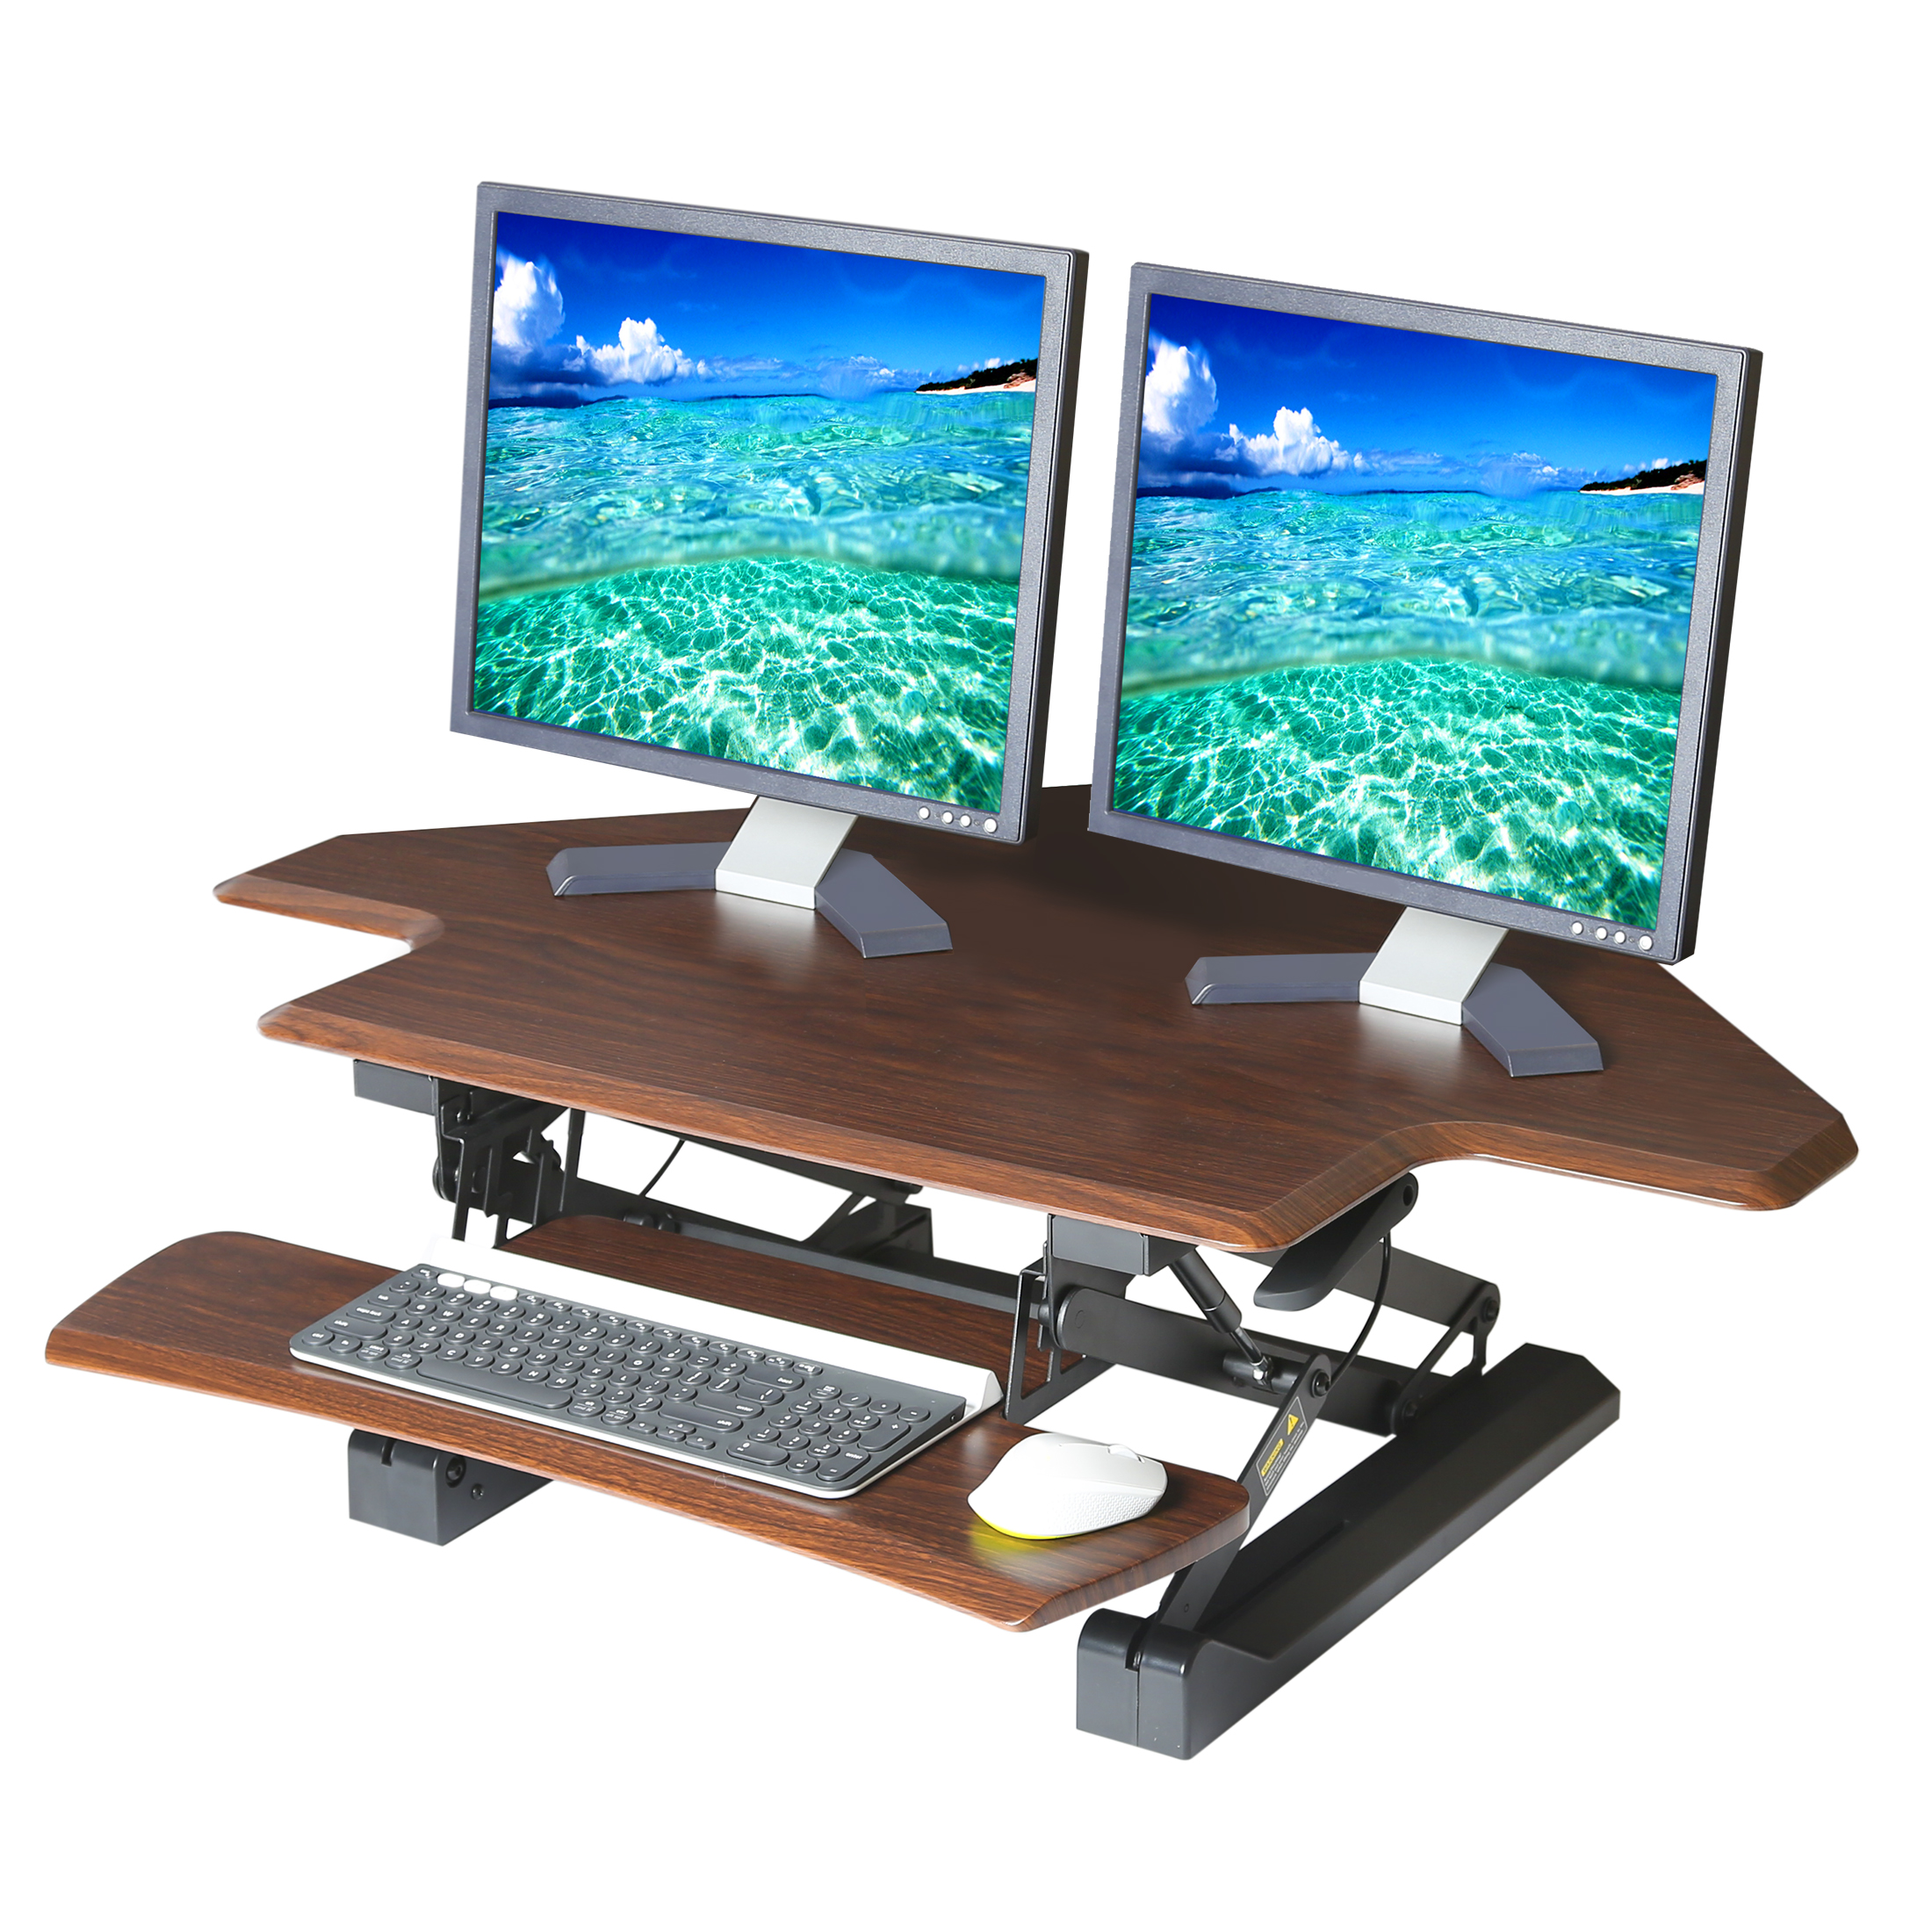 "Seville Classics AIRLIFT Corner Cubicle Gas-Spring Dual-Monitor Riser Standing Desk Converter with Keyboard Tray and Phone Holder, 43"" x 31"" Height Adjustable to 19.7"", Walnut"